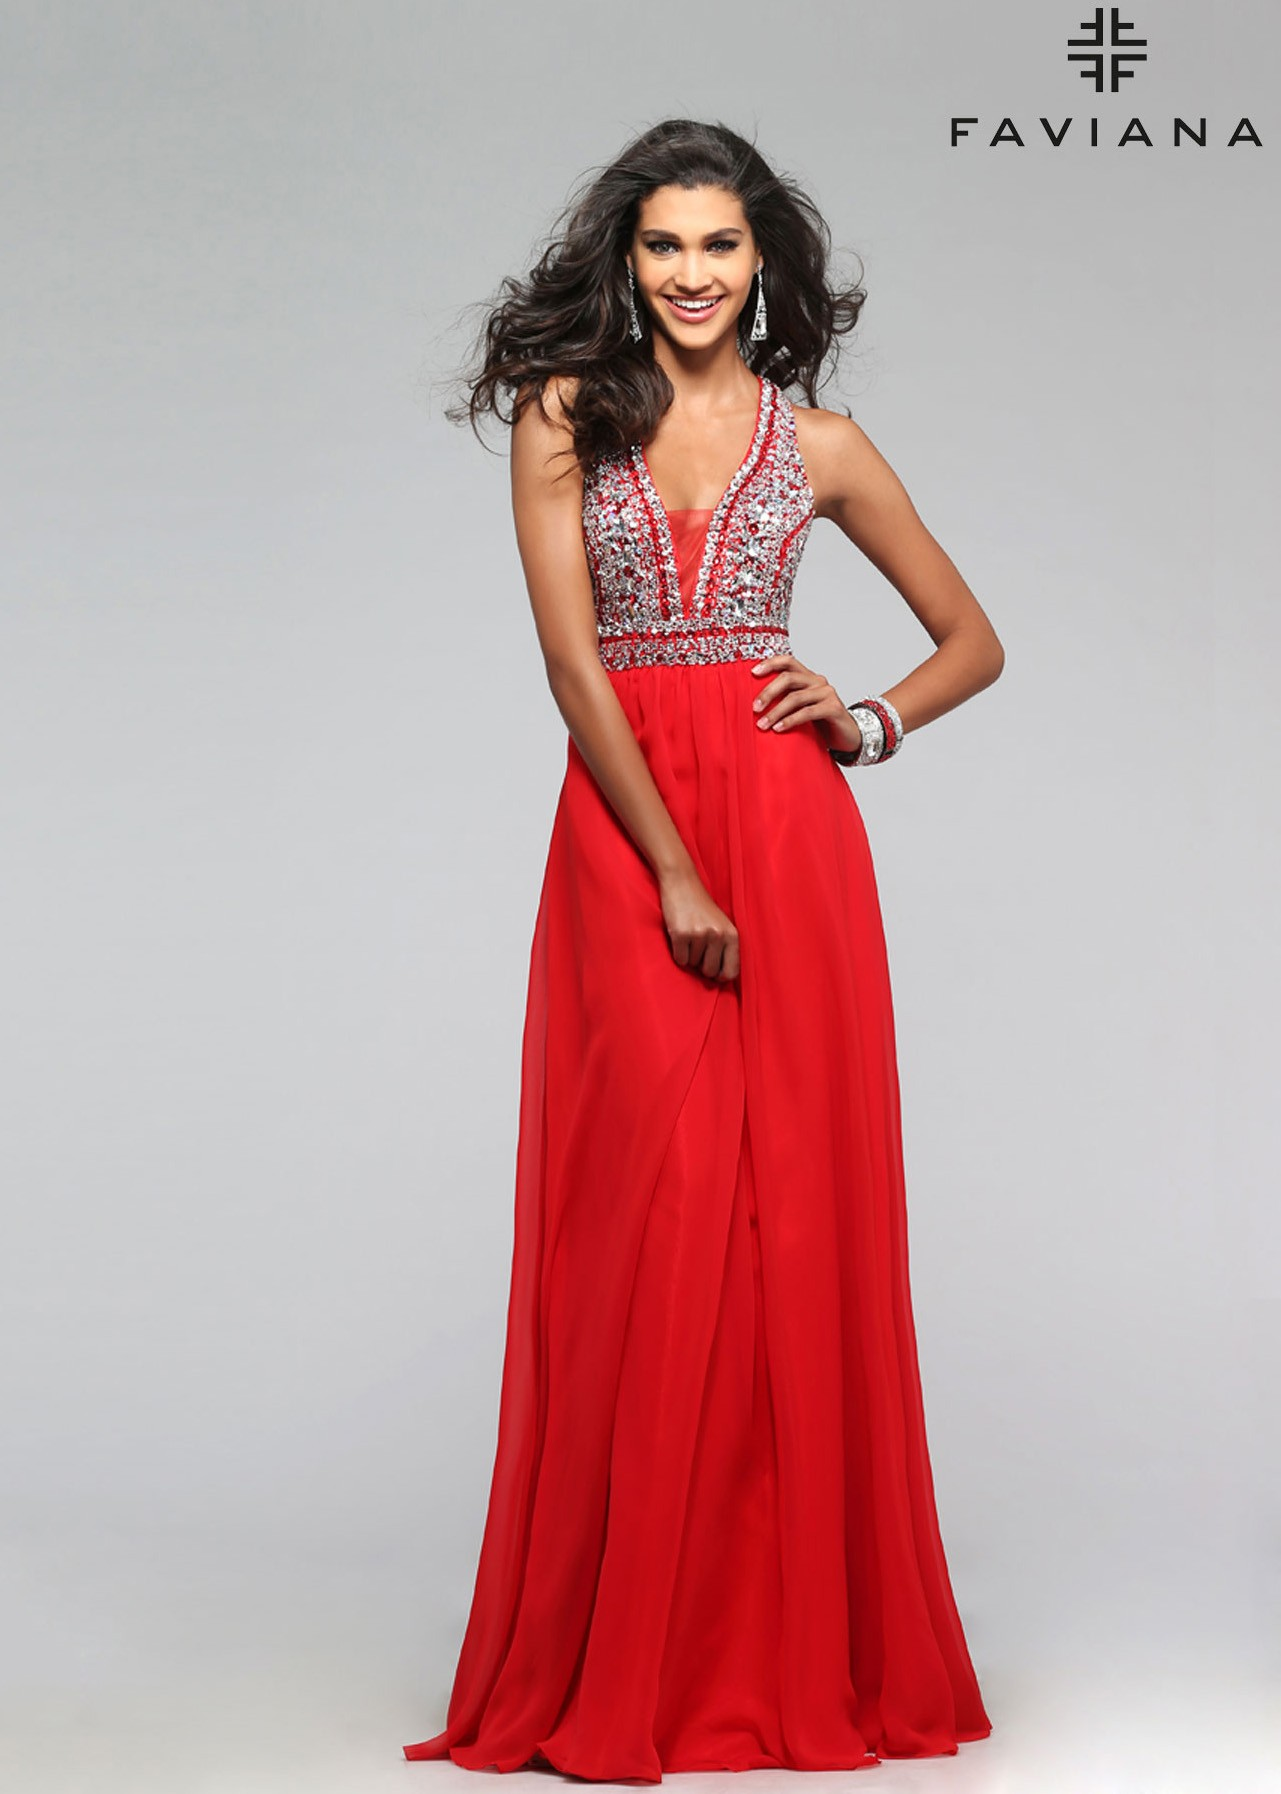 Faviana S7500 Elegant Beaded V-Neck A-Line Chiffon Dress